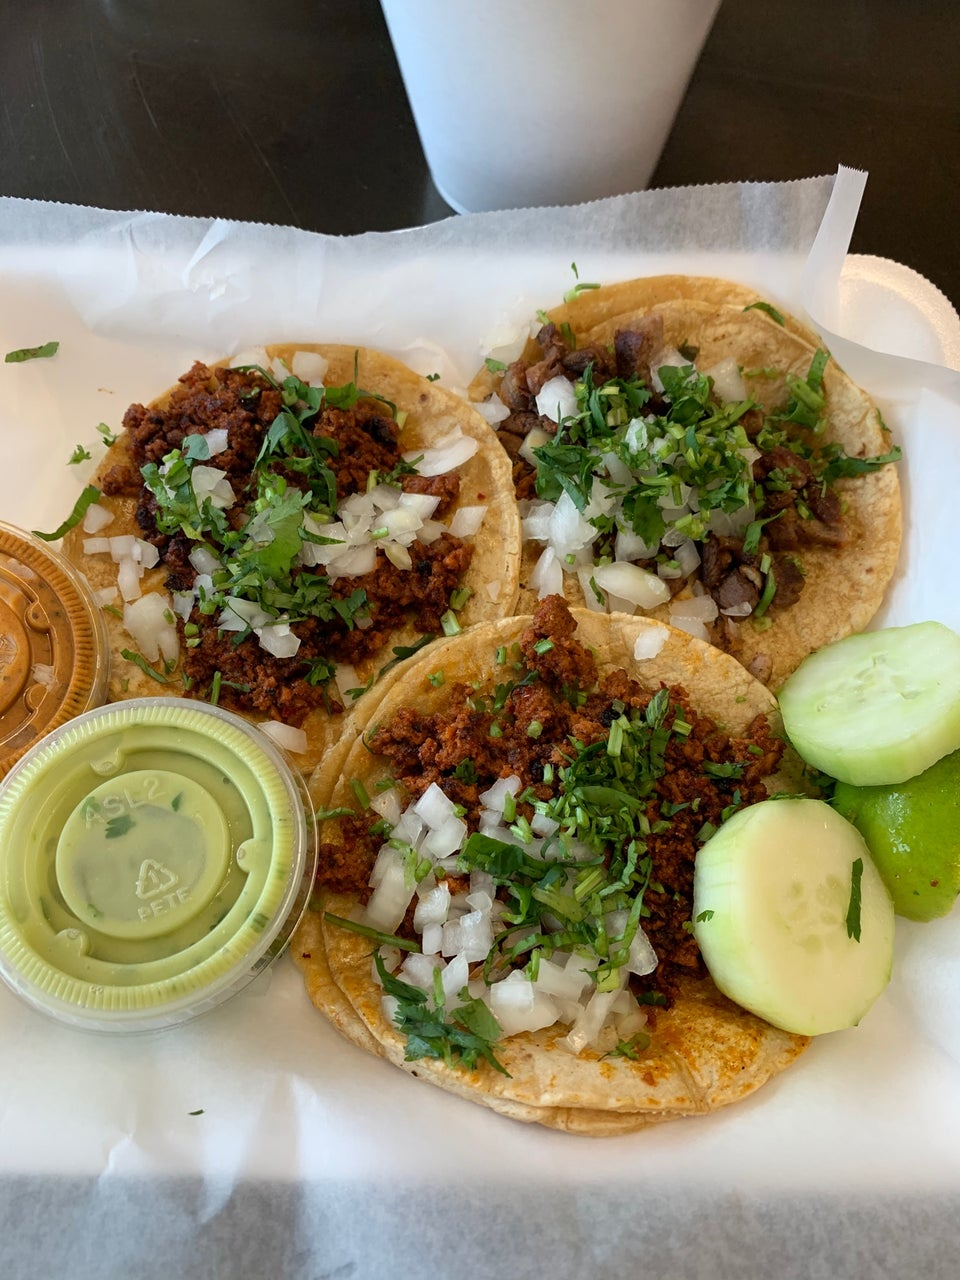 Akron Oh Restaurants Open For Takeout Curbside Service And Or Delivery Restaurantji Best gyros and greek food in metro atlanta! akron oh restaurants open for takeout